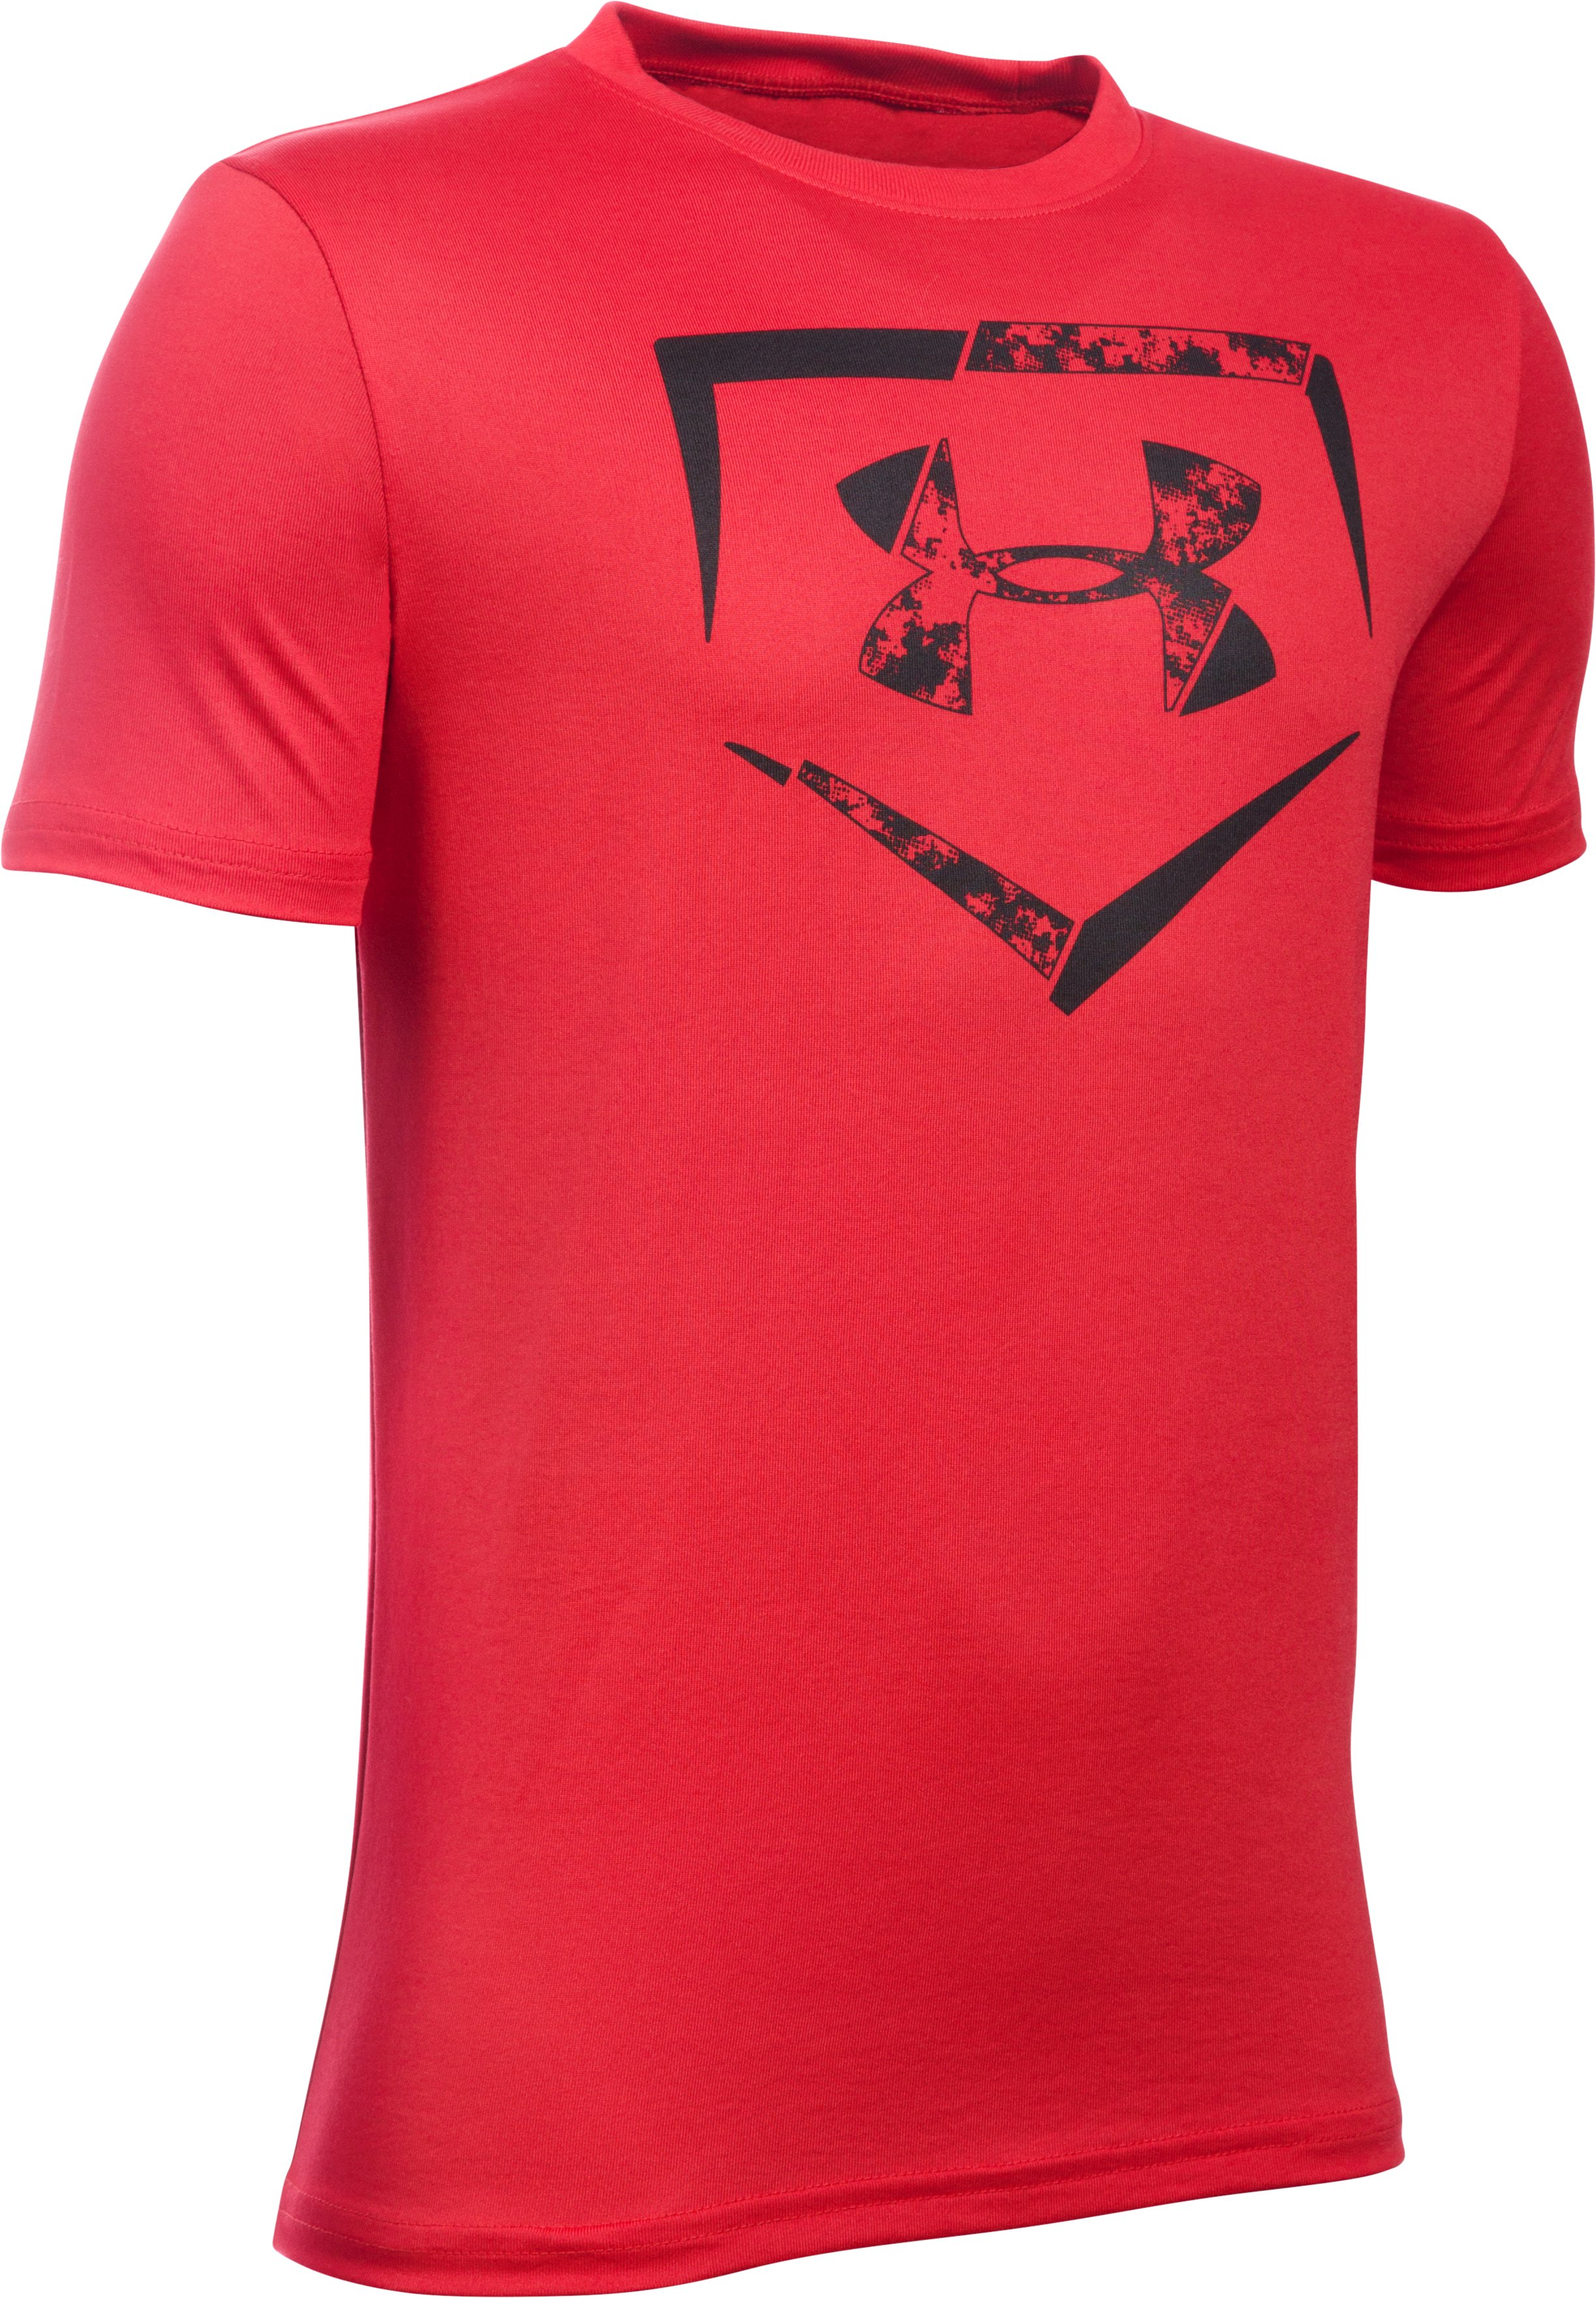 Boys' UA Diamond Logo T-Shirt, Red